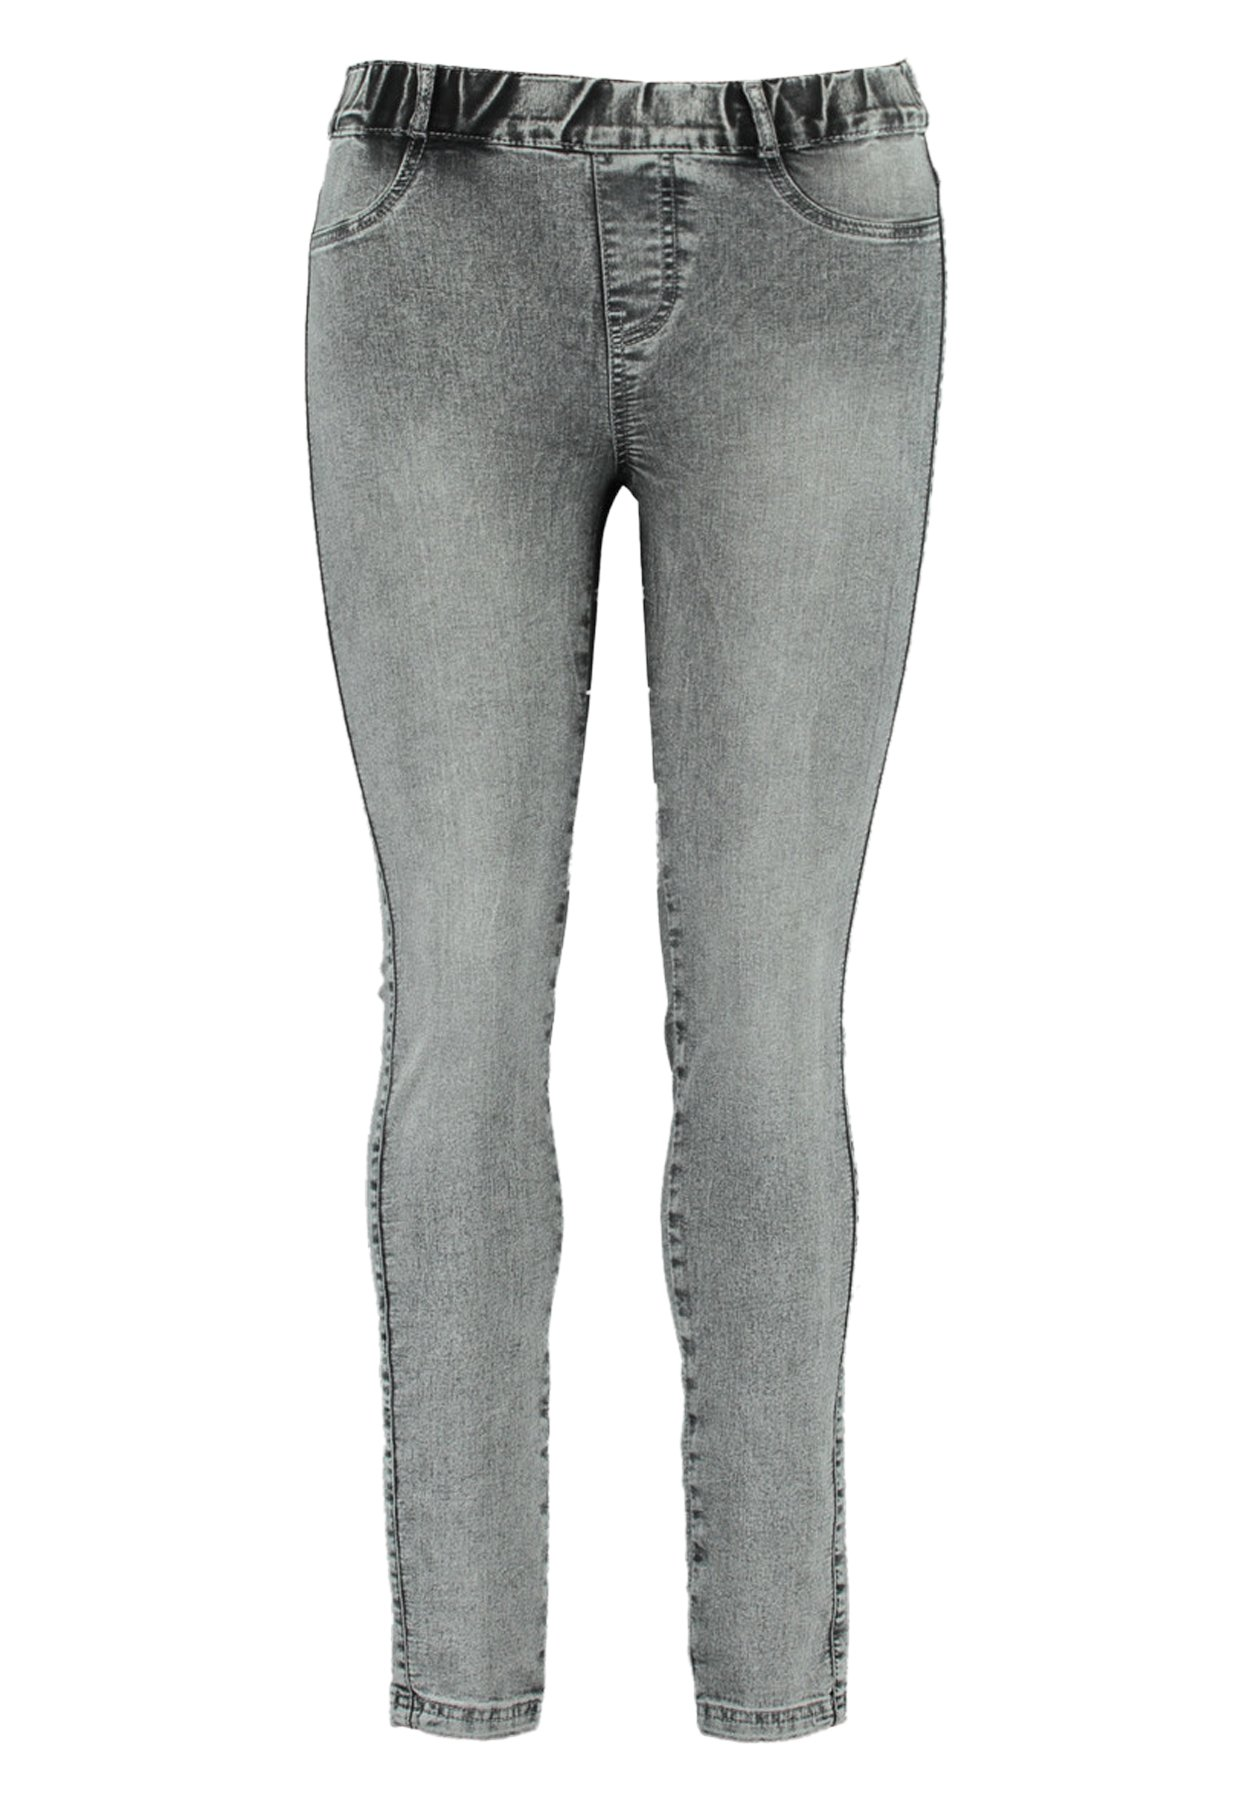 MS Mode Slim fit jeans - grey